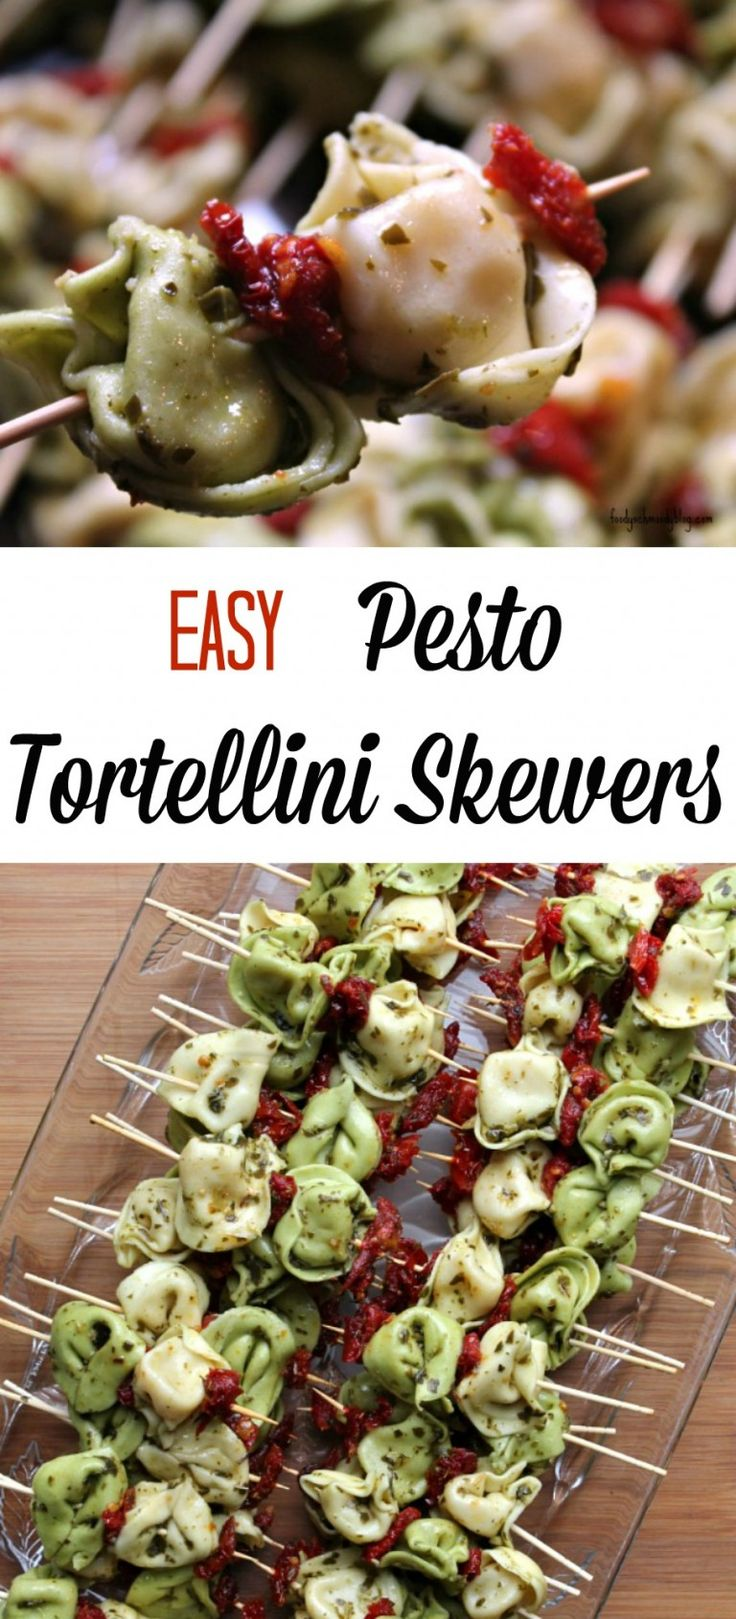 Easy Pesto Tortellini Skewers